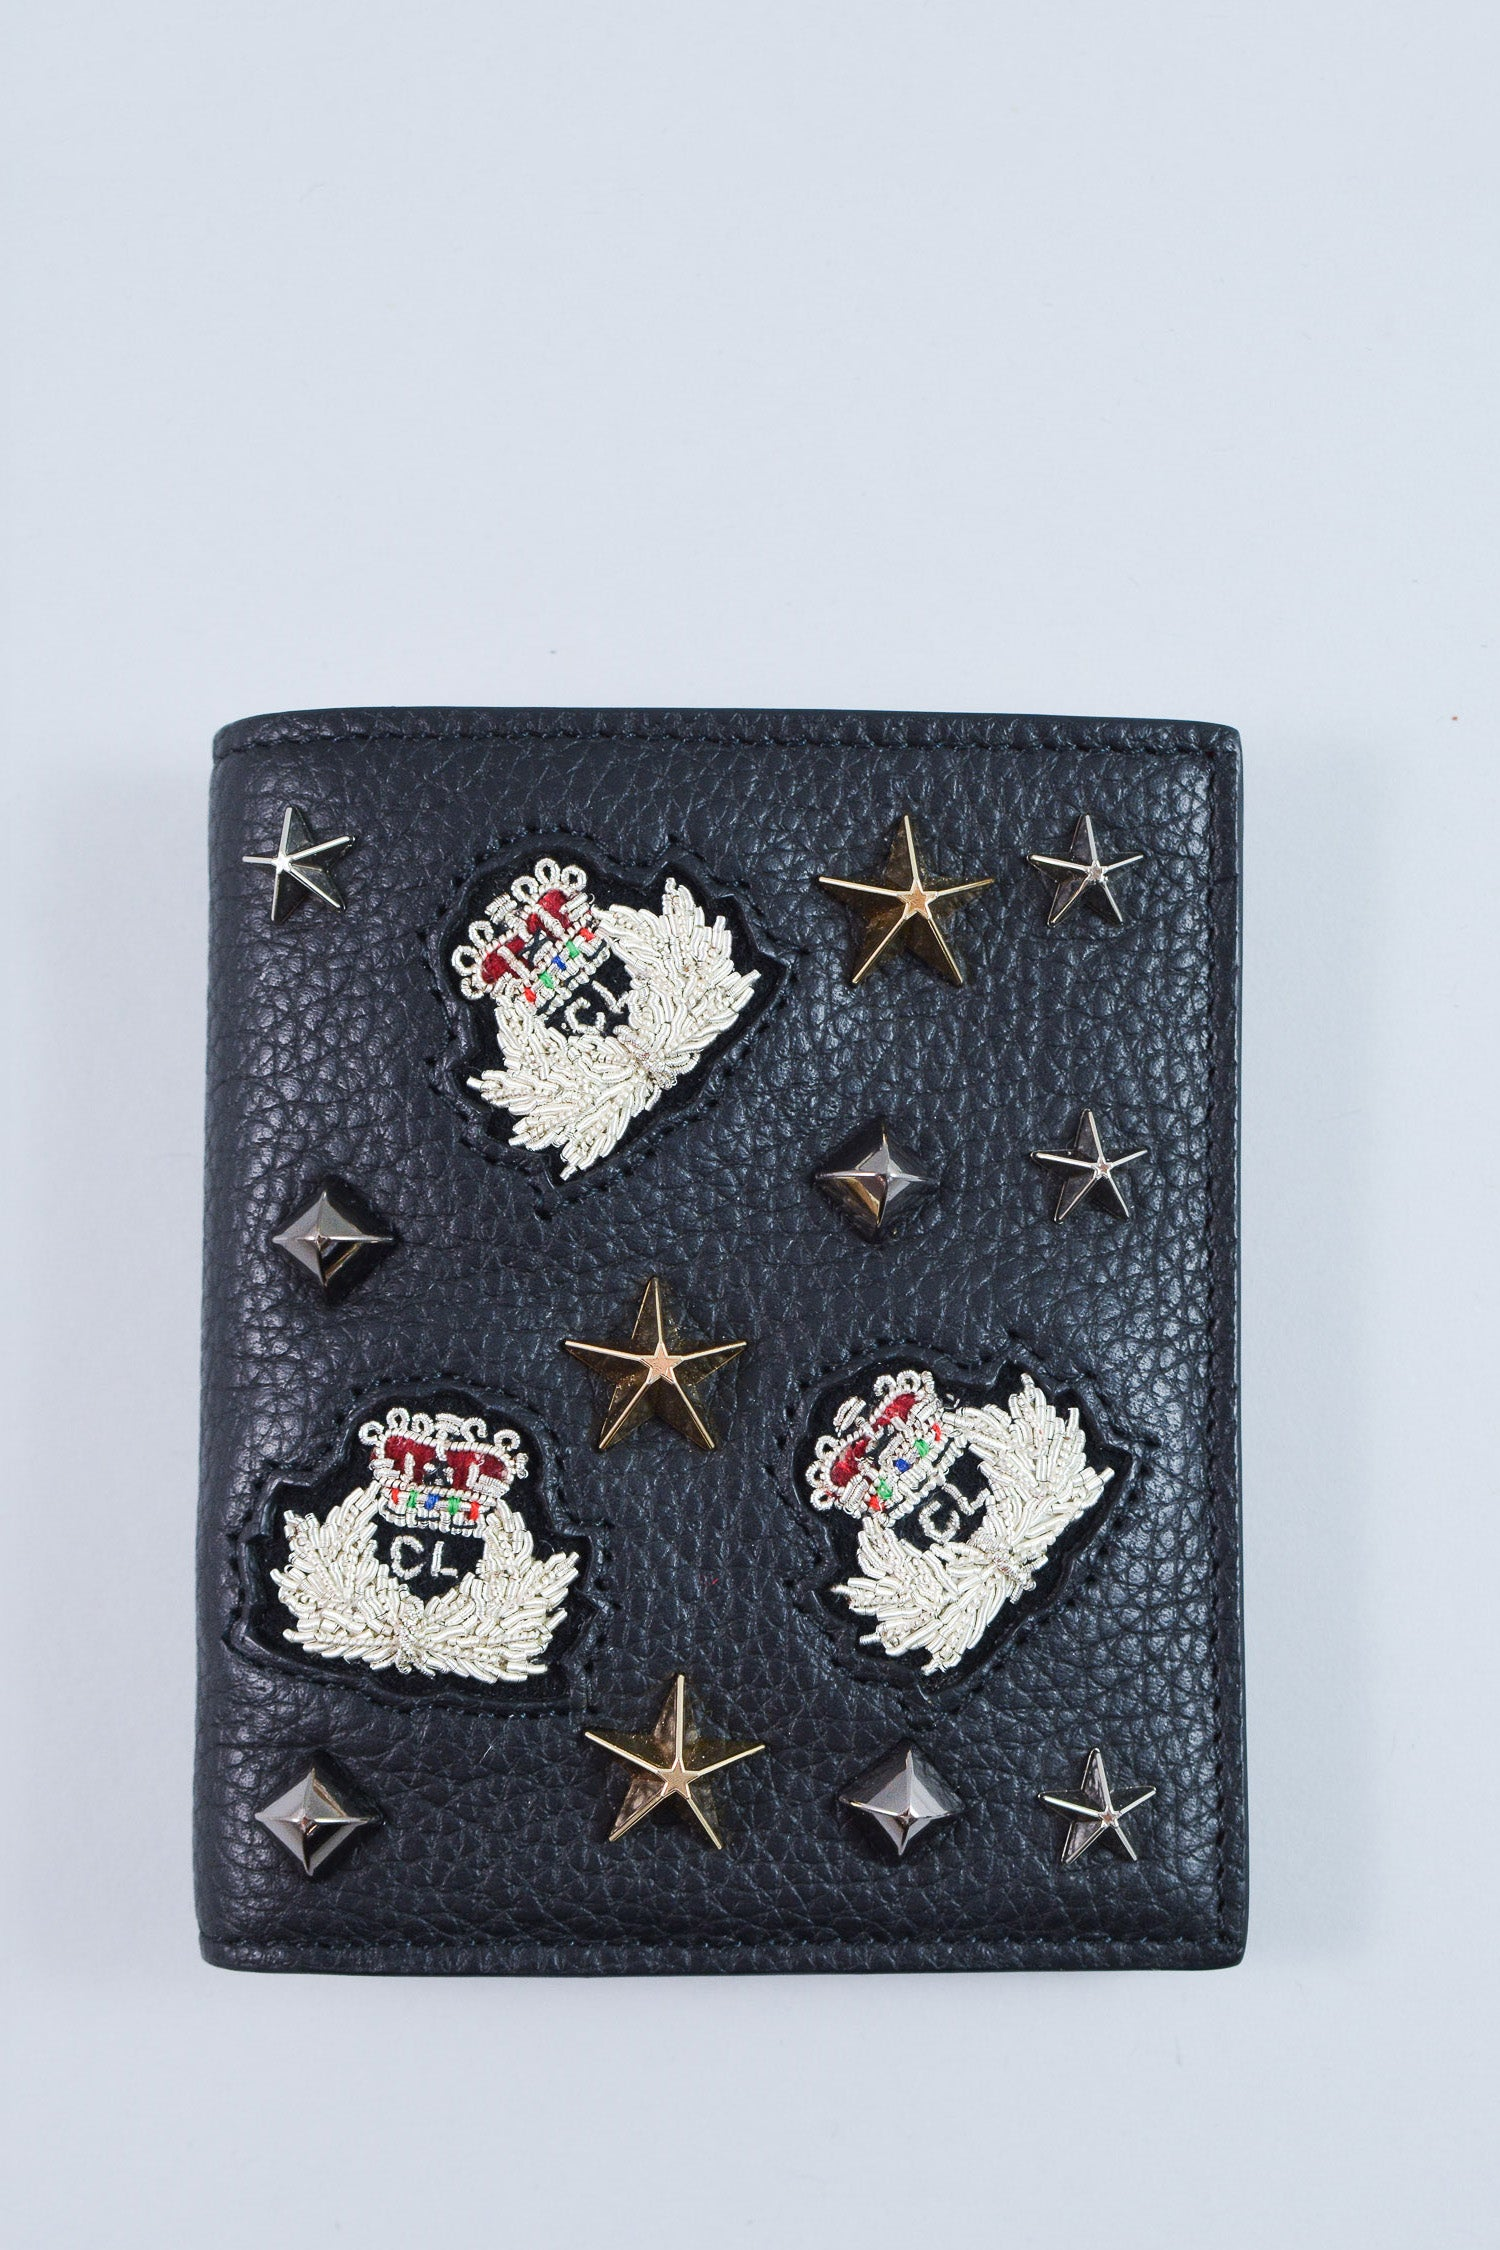 Christian Louboutin Women's Leather Studded (Bi-fold) Wallet